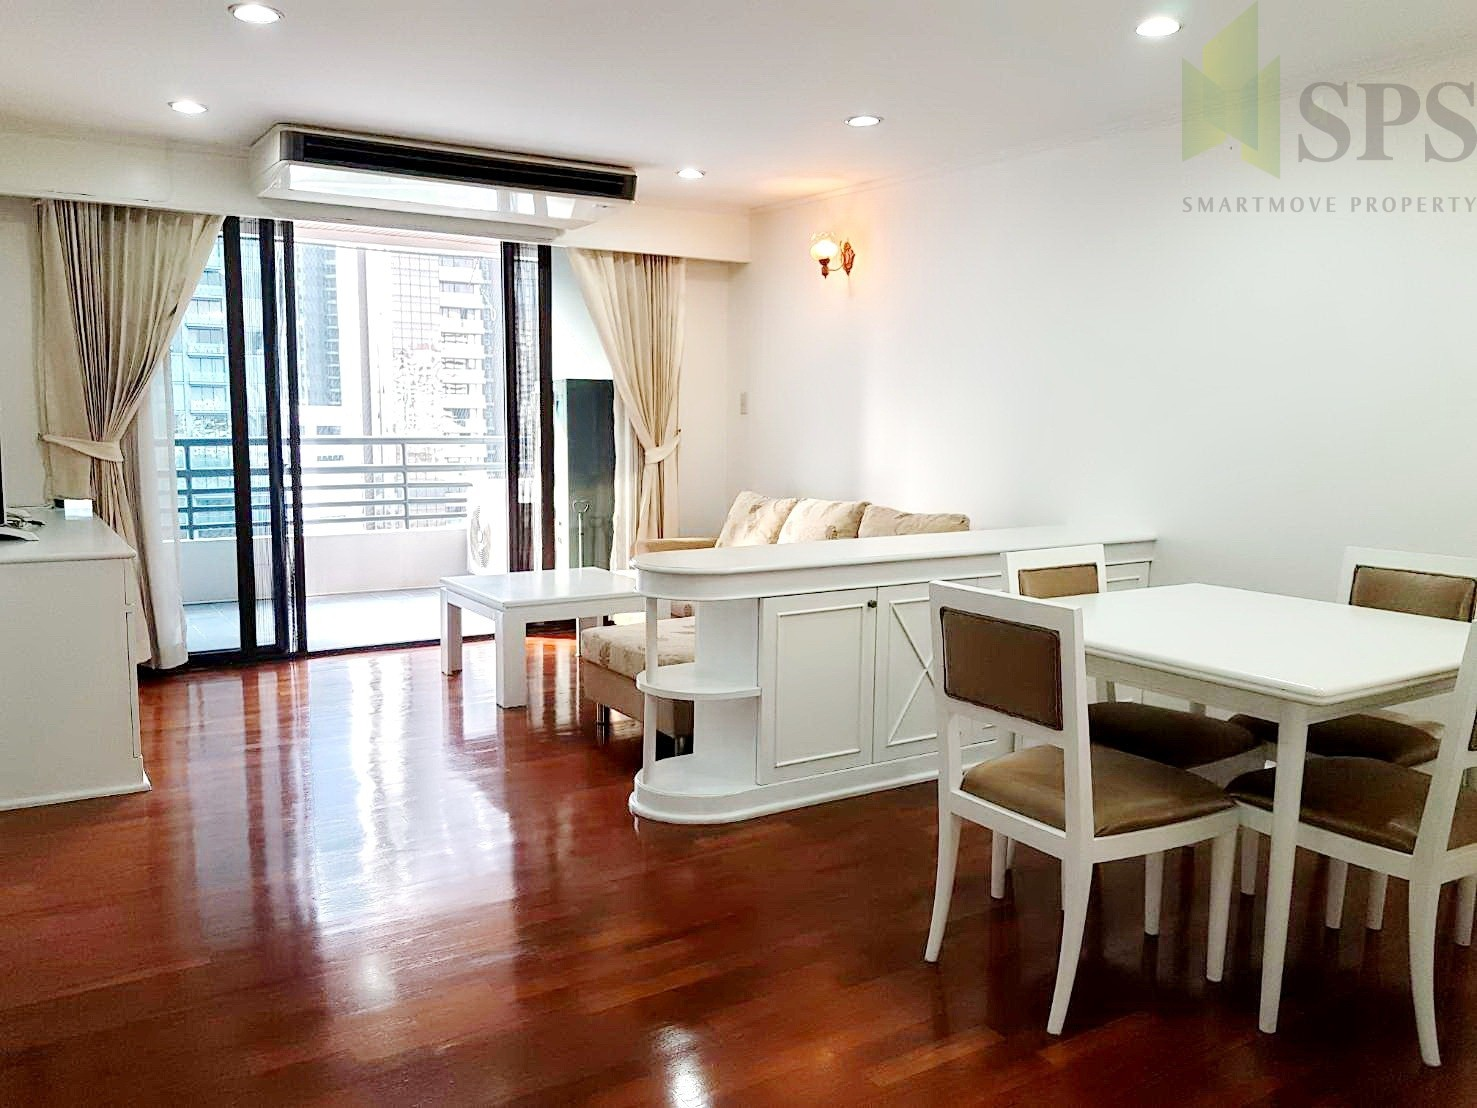 2 Beds at Acadamia Grand Tower for RENT (SPSCS043)